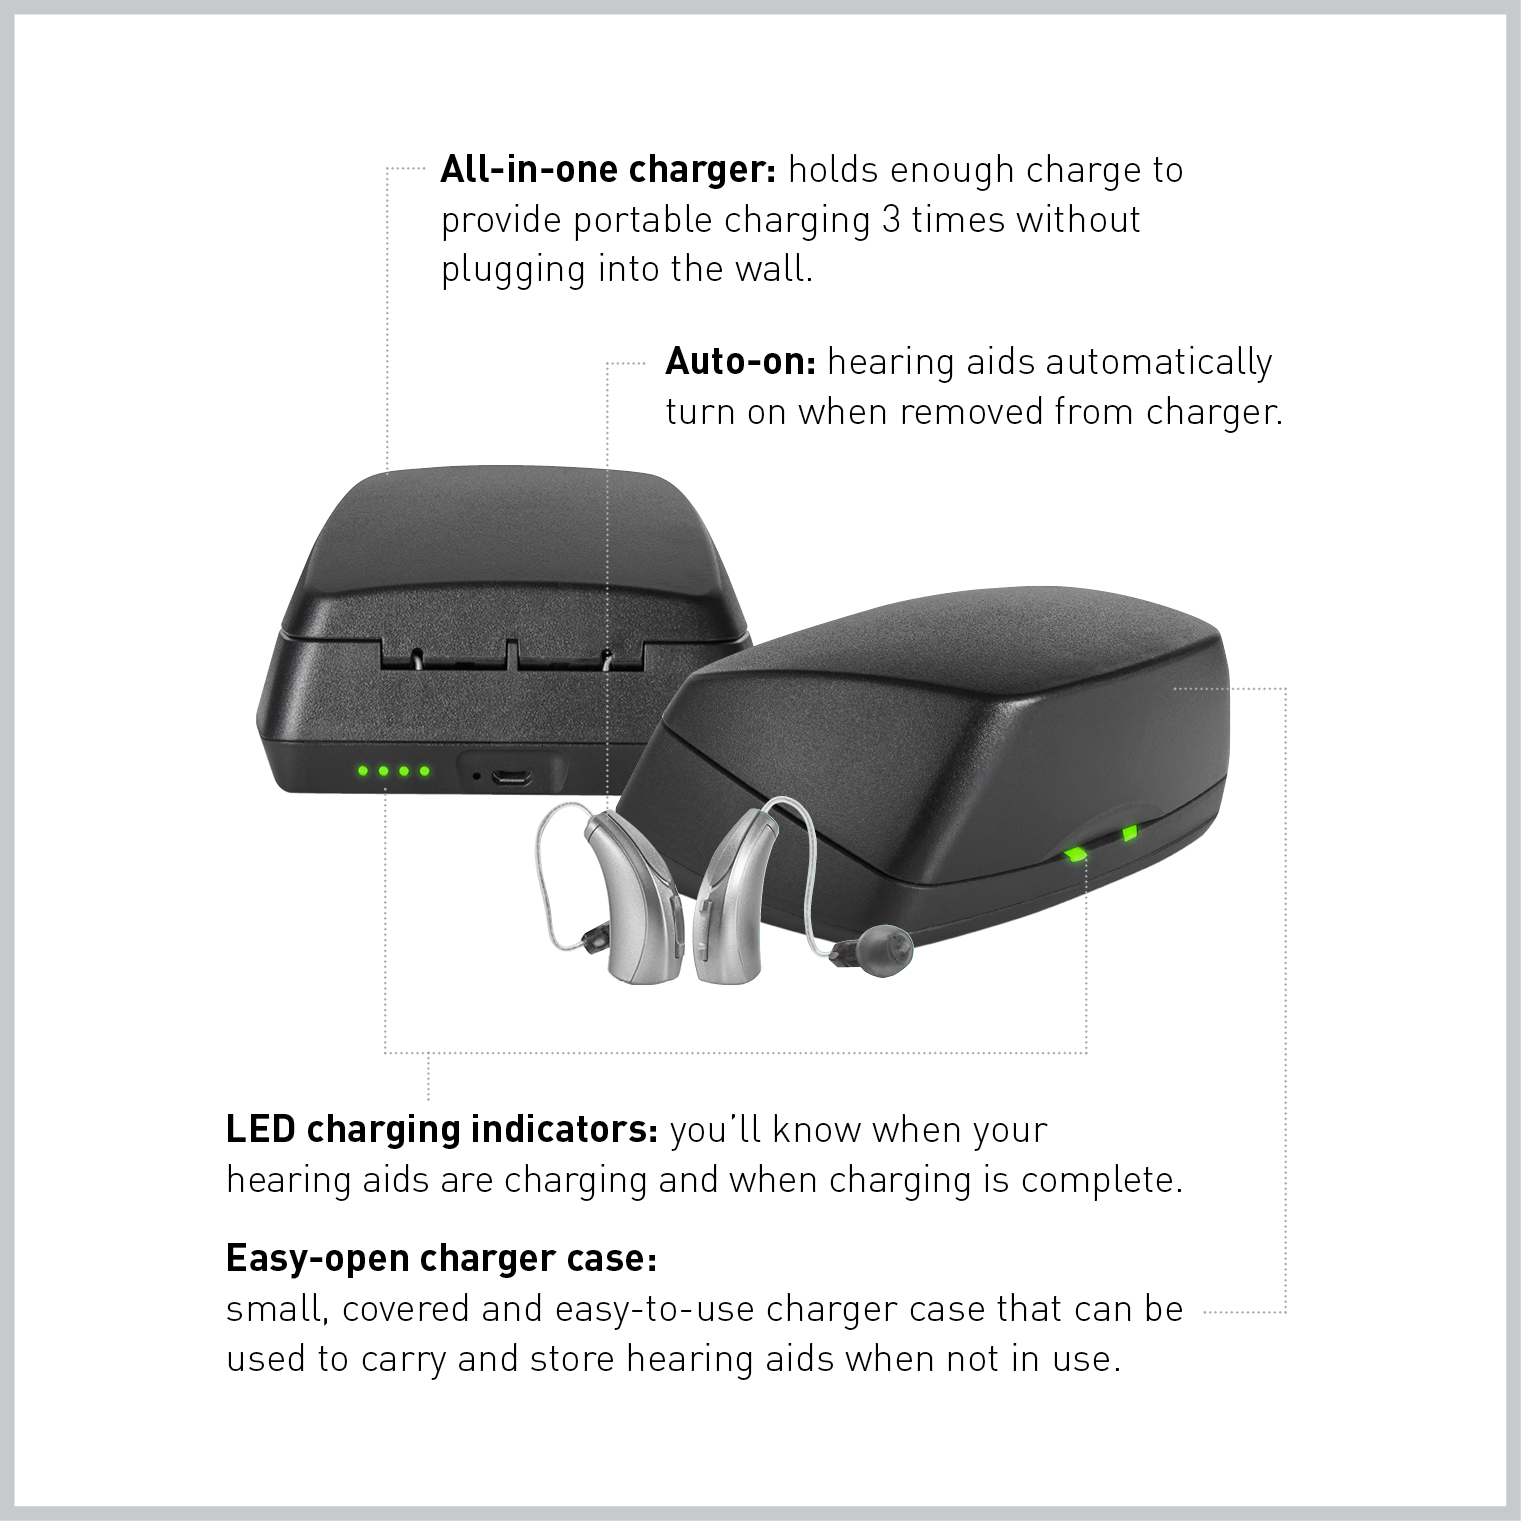 Technology features of the new smart, smallest rechargeable hearing aid from Starkey Hearing Technologies.